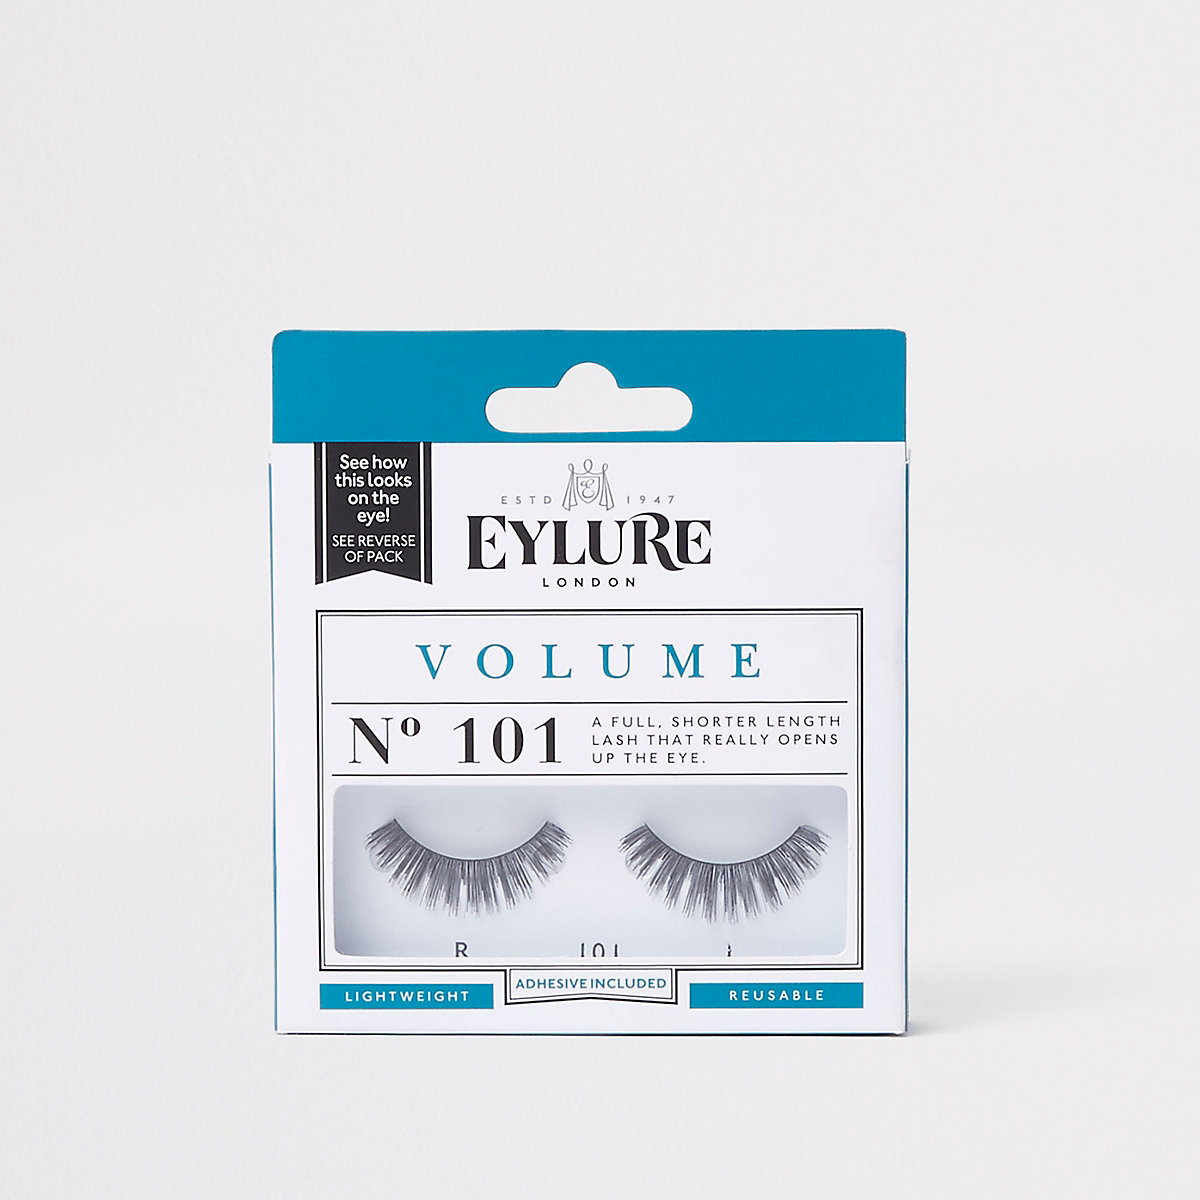 Eylure volume 101 false eyelashes